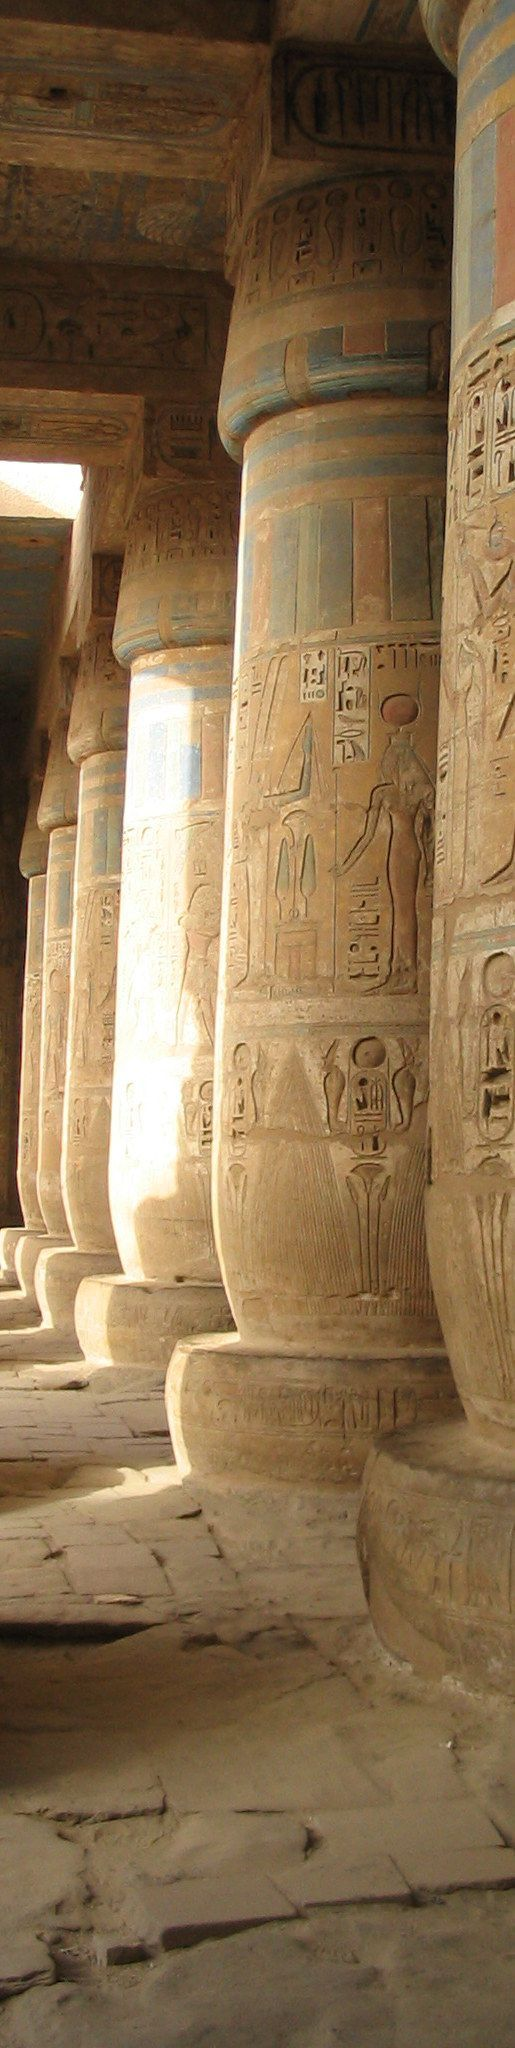 Medinet Habu Temple pigmented columns of the peristyle hall. Luxor, Egypt.